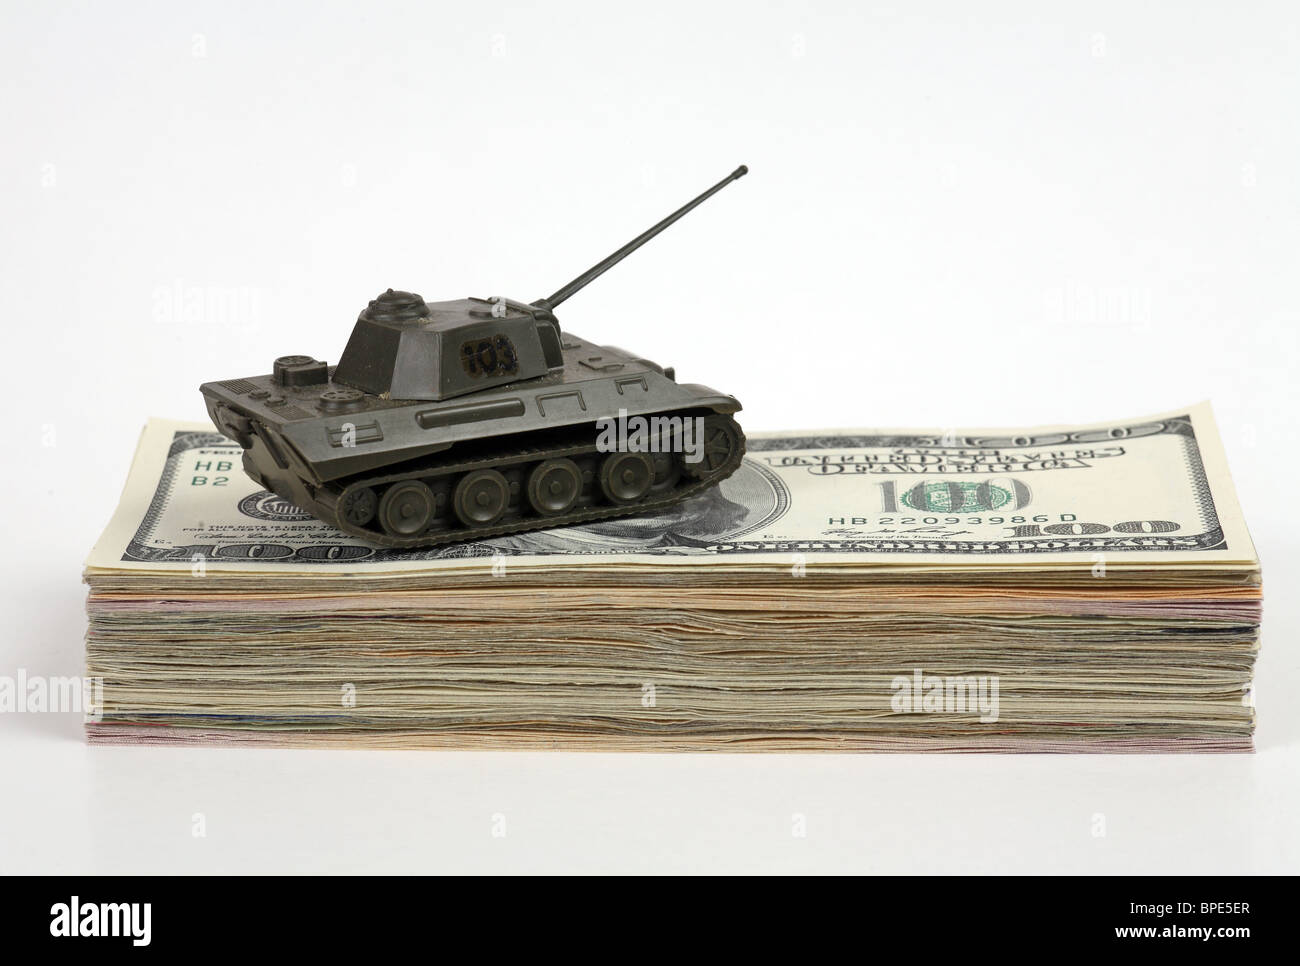 A model tank on a wad of 100-dollar notes - Stock Image